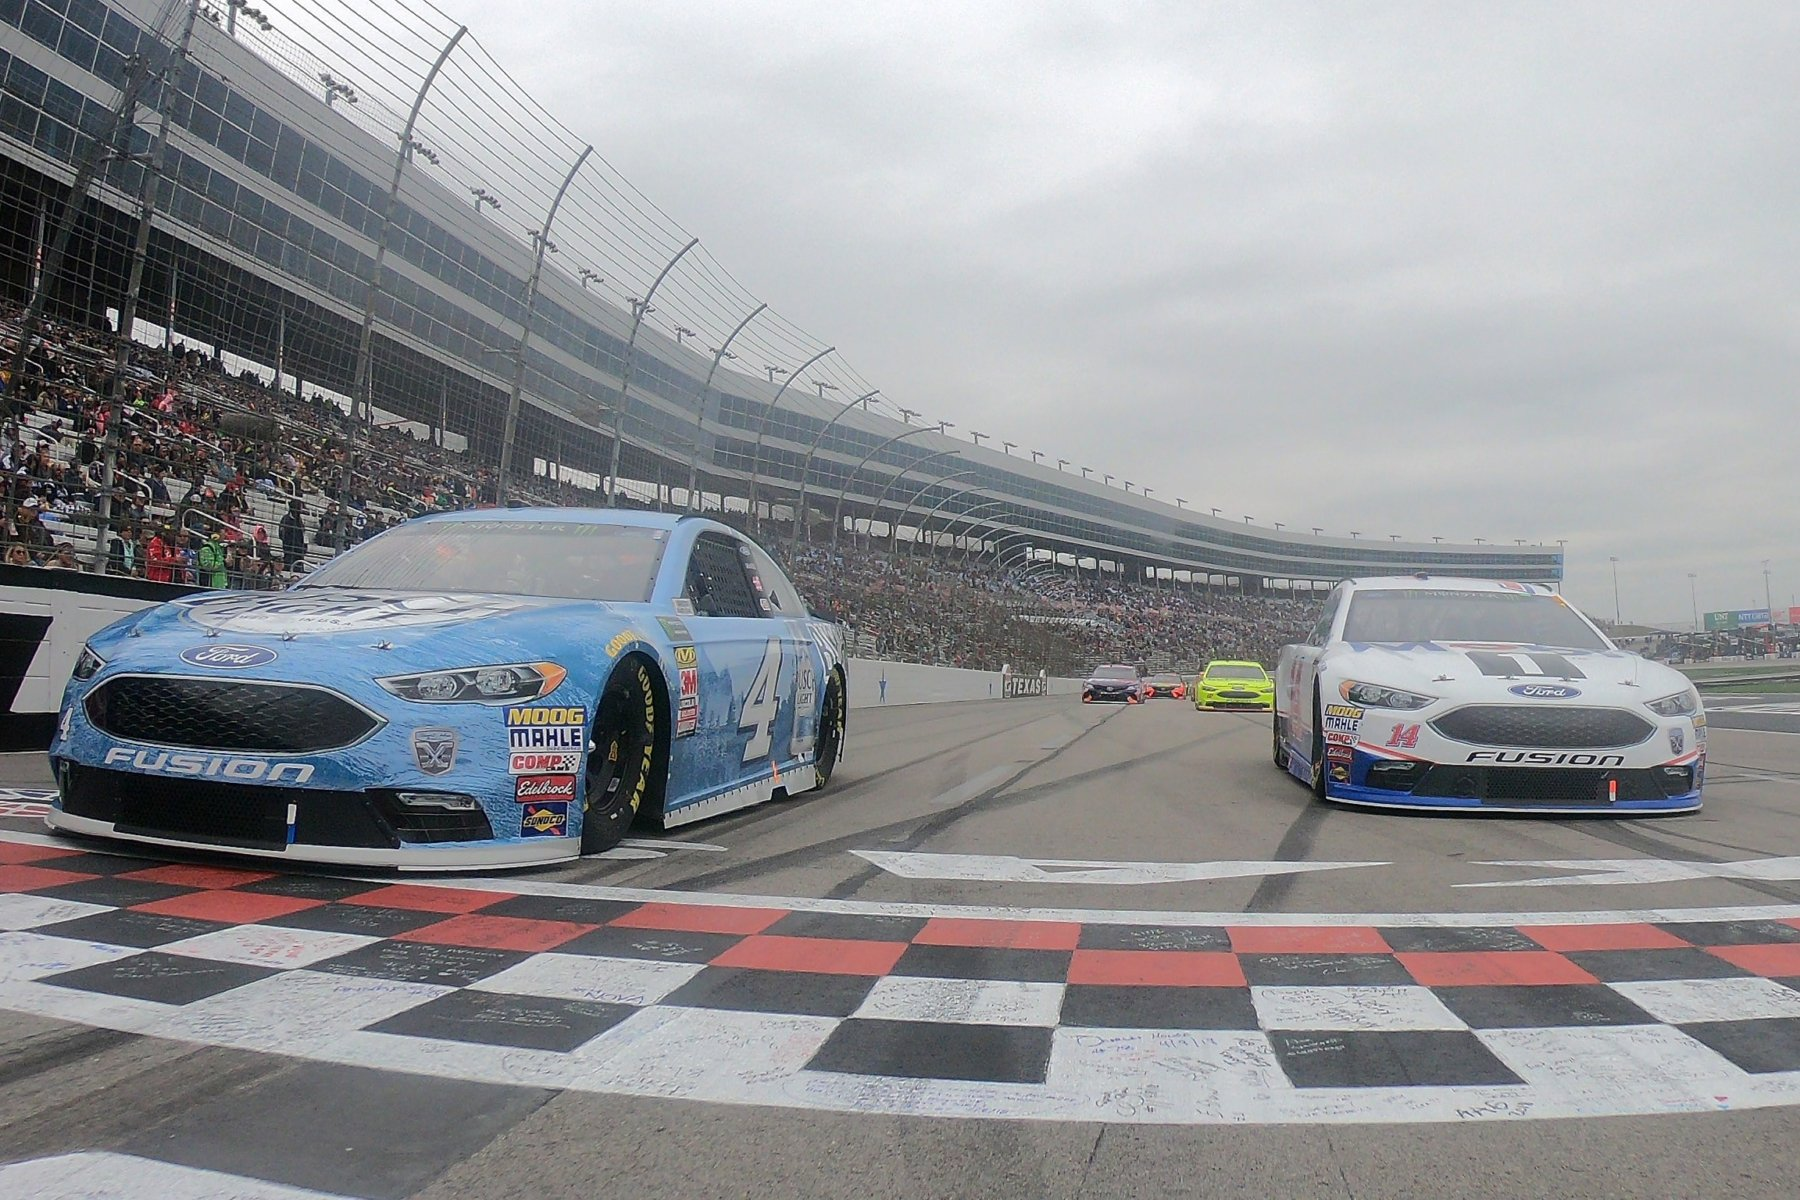 Kevin Harvick and Clint Bowyer at Texas Motor Speedway